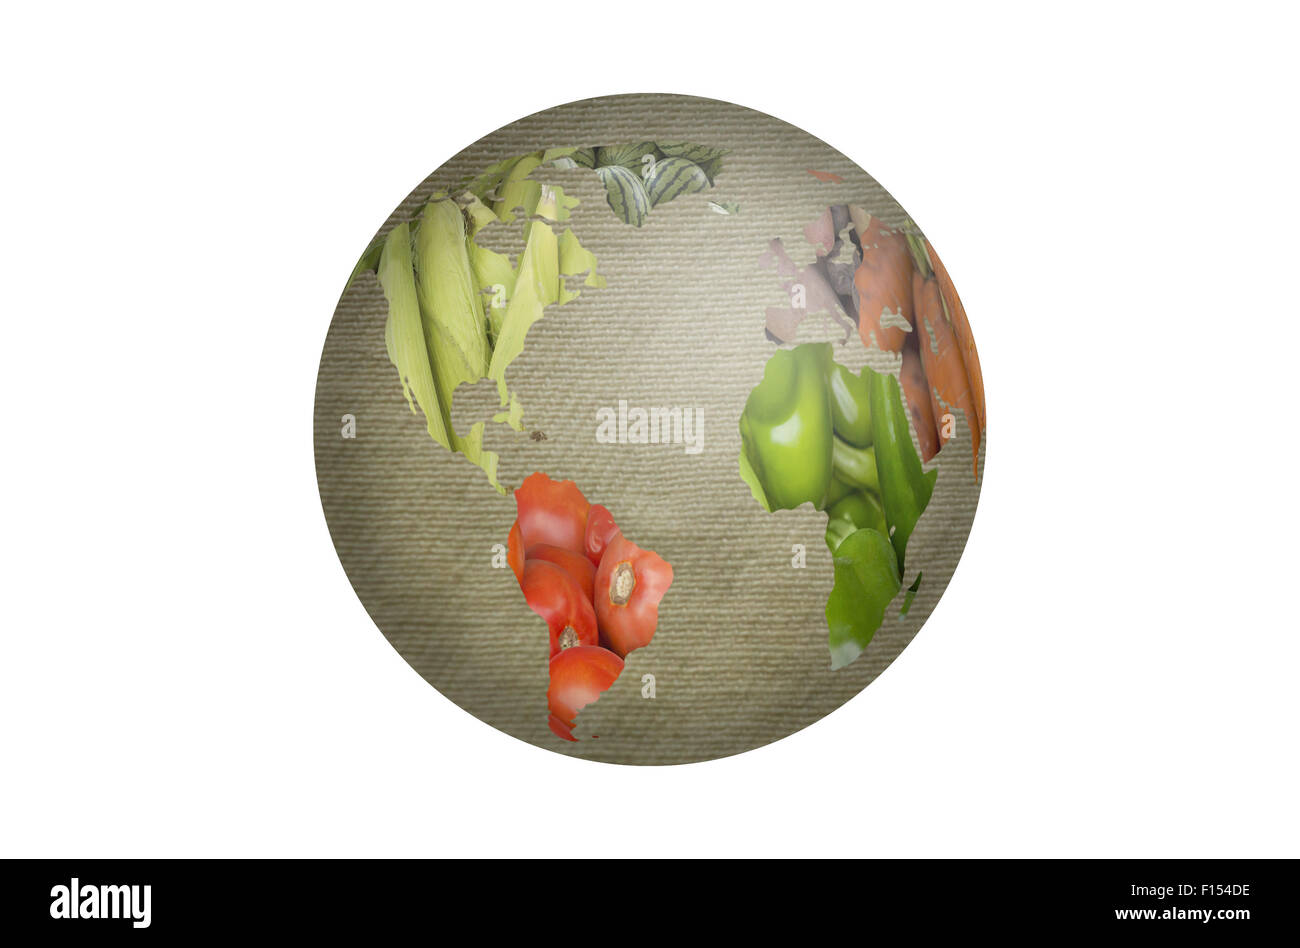 World map collage of lots of popular fruits and vegetables stock world map collage of lots of popular fruits and vegetables gumiabroncs